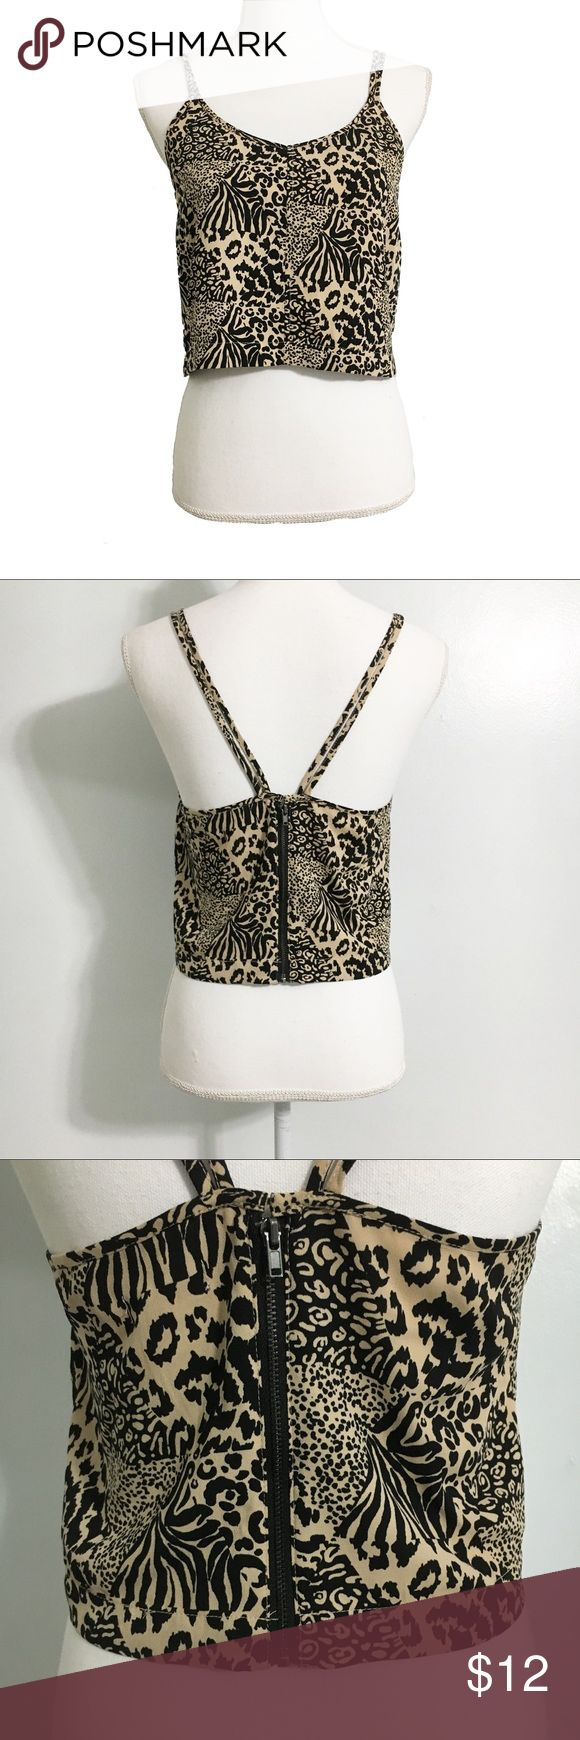 "Urban Outfitters Animal Print Crop Top Size S Urban Outfitters Animal Print Crop Top Size S  Animal print crop top from Silence + Noise (Urban Outfitters brand). Back zip closure. Used in excellent condition. Size S.   Fabric Content: - Body: 100% polyester  Measurements (not doubled, approximate and taken with garment laid flat): - Bust: 16.75"" - Hem width: 14.75"" - Total length: 12.75"" silence + noise Tops Crop Tops"